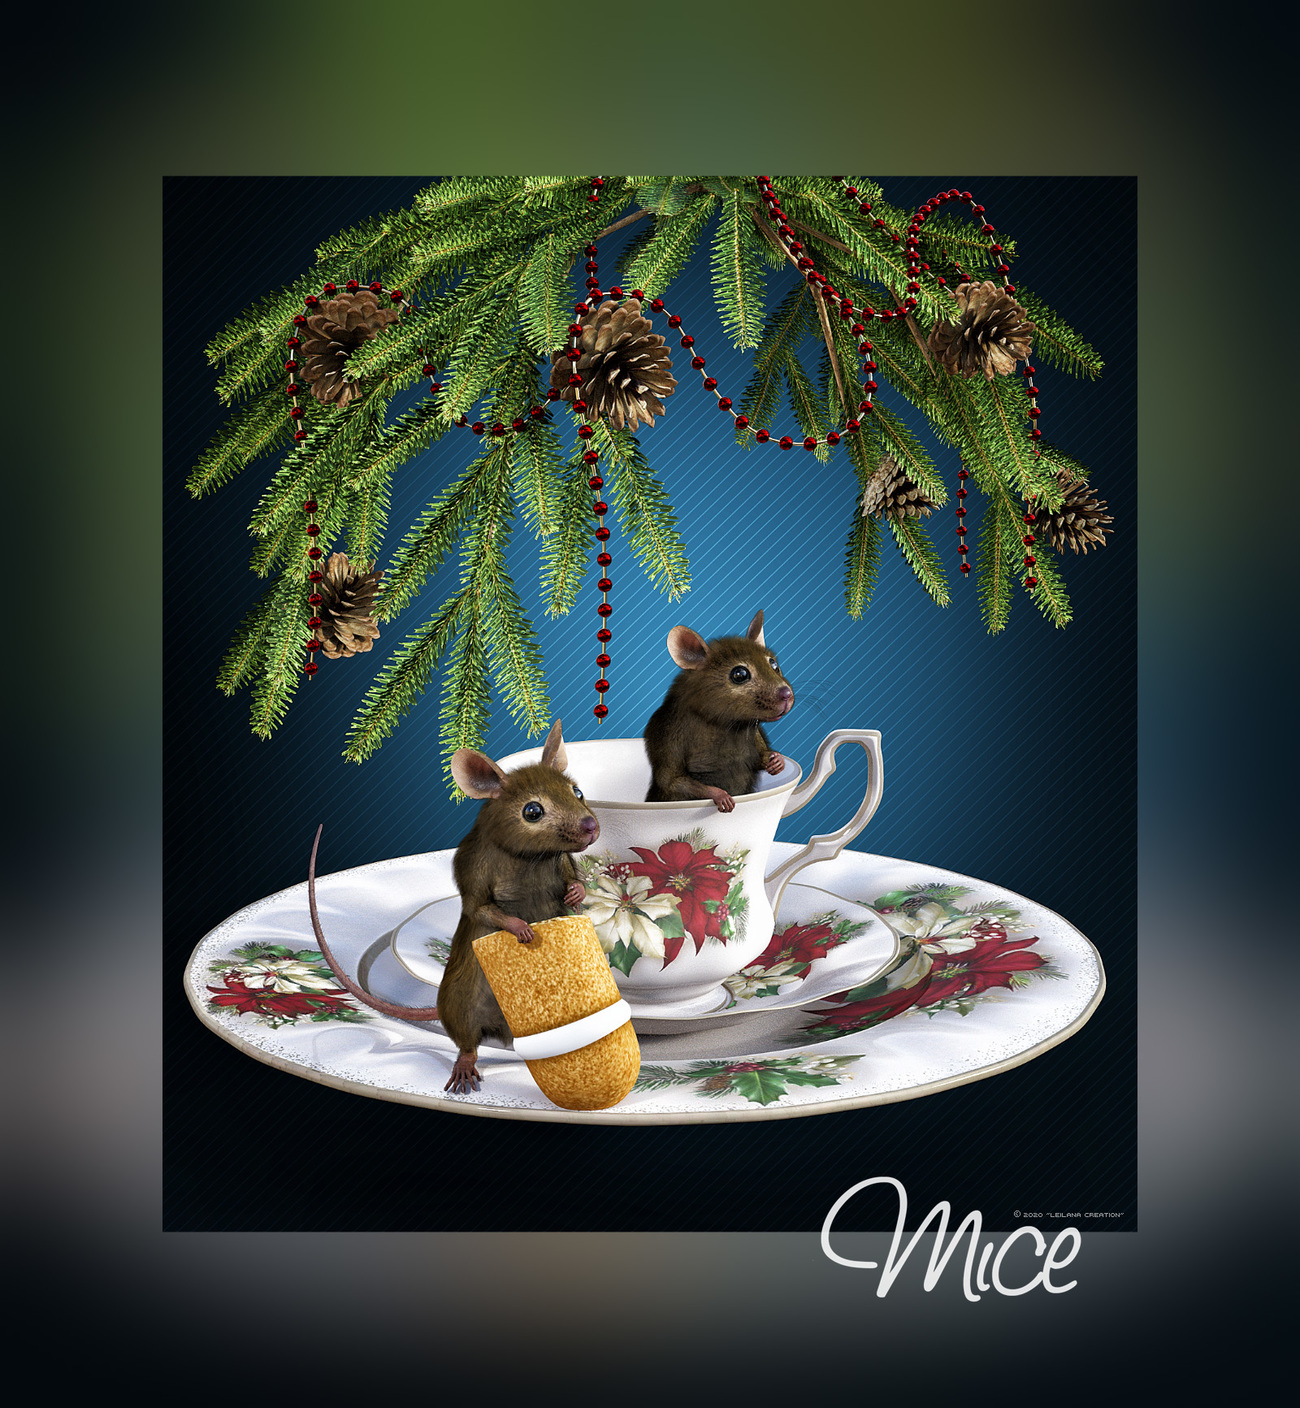 ~*Mice*~ by Leilana